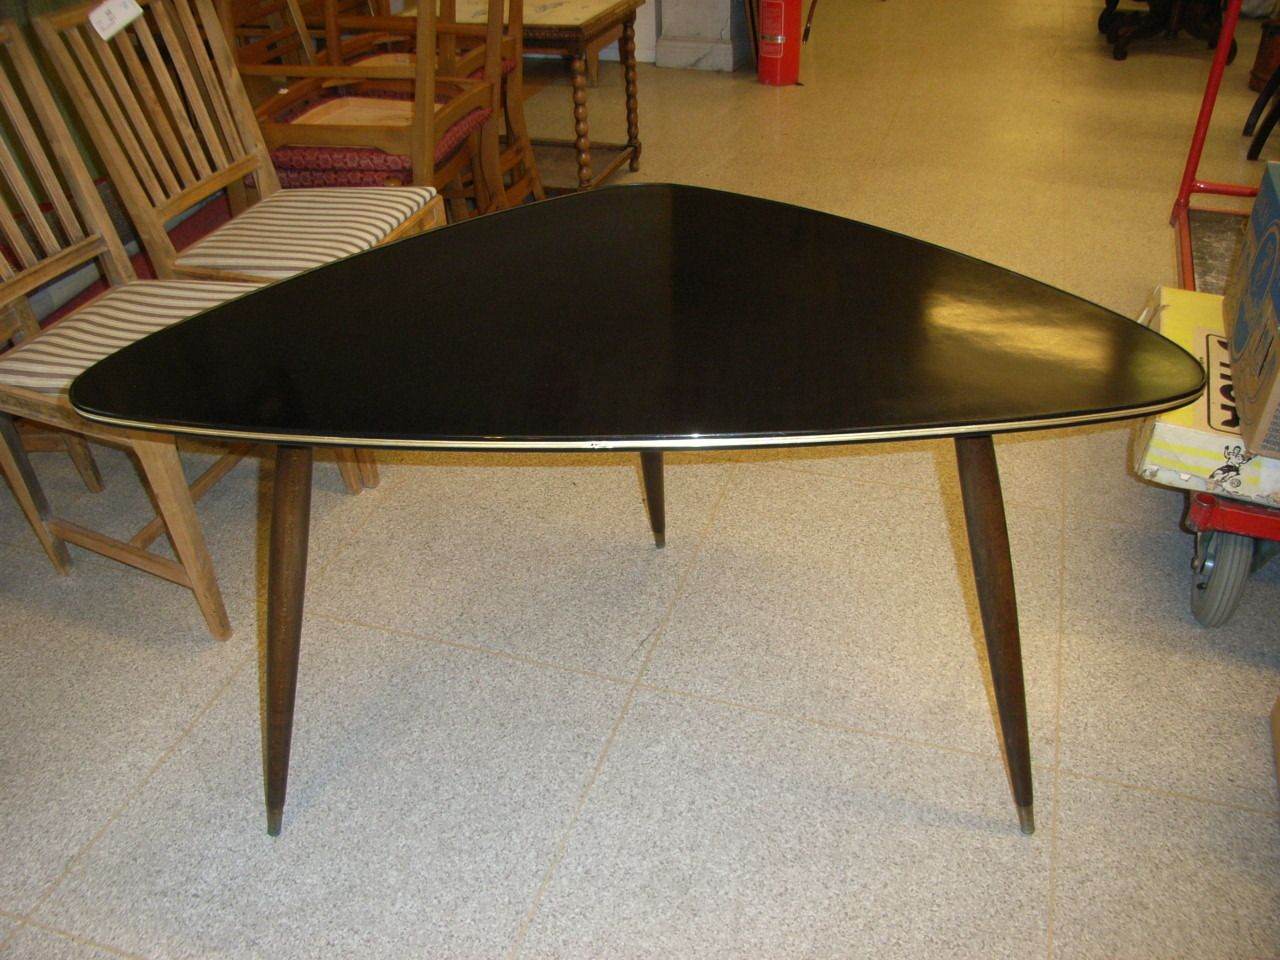 Differently shaped 50s coffee table my new home pinterest differently shaped 50s coffee table geotapseo Image collections